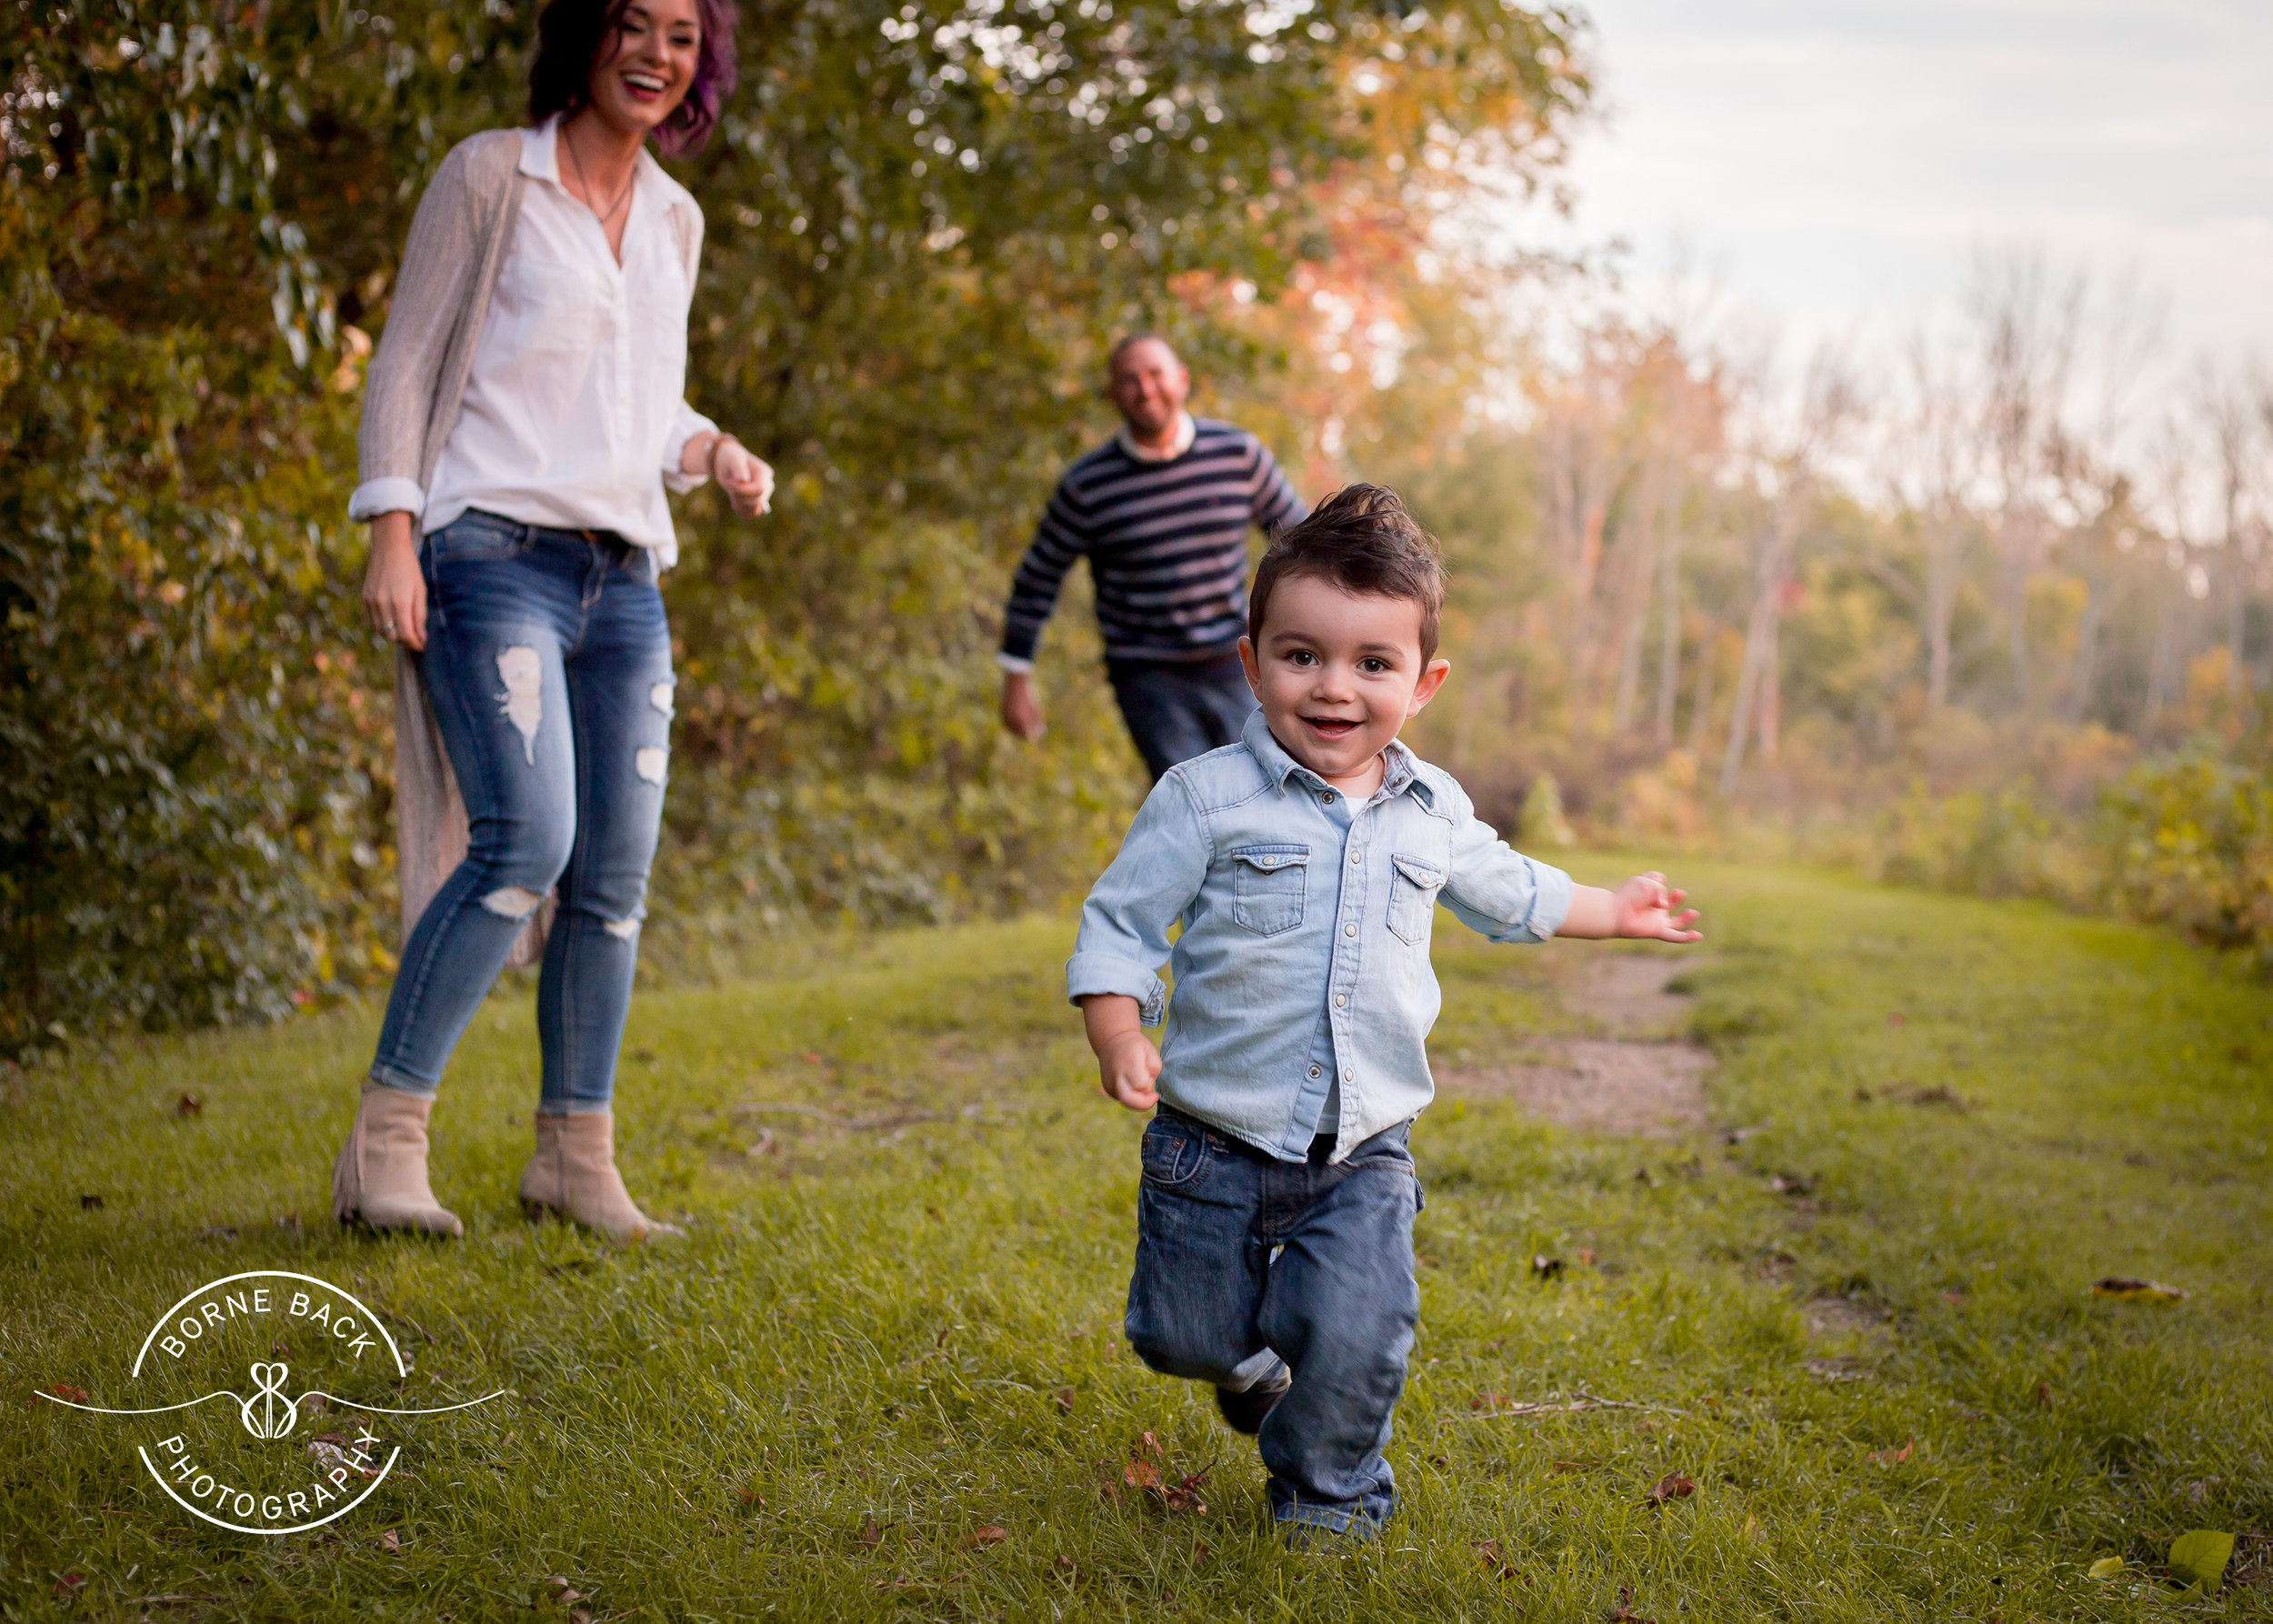 I love this fall favorite! This little guy was a mover so having a photo like this allows you to capture him exactly as he was (a rambunctious two year old) in a beautiful way.